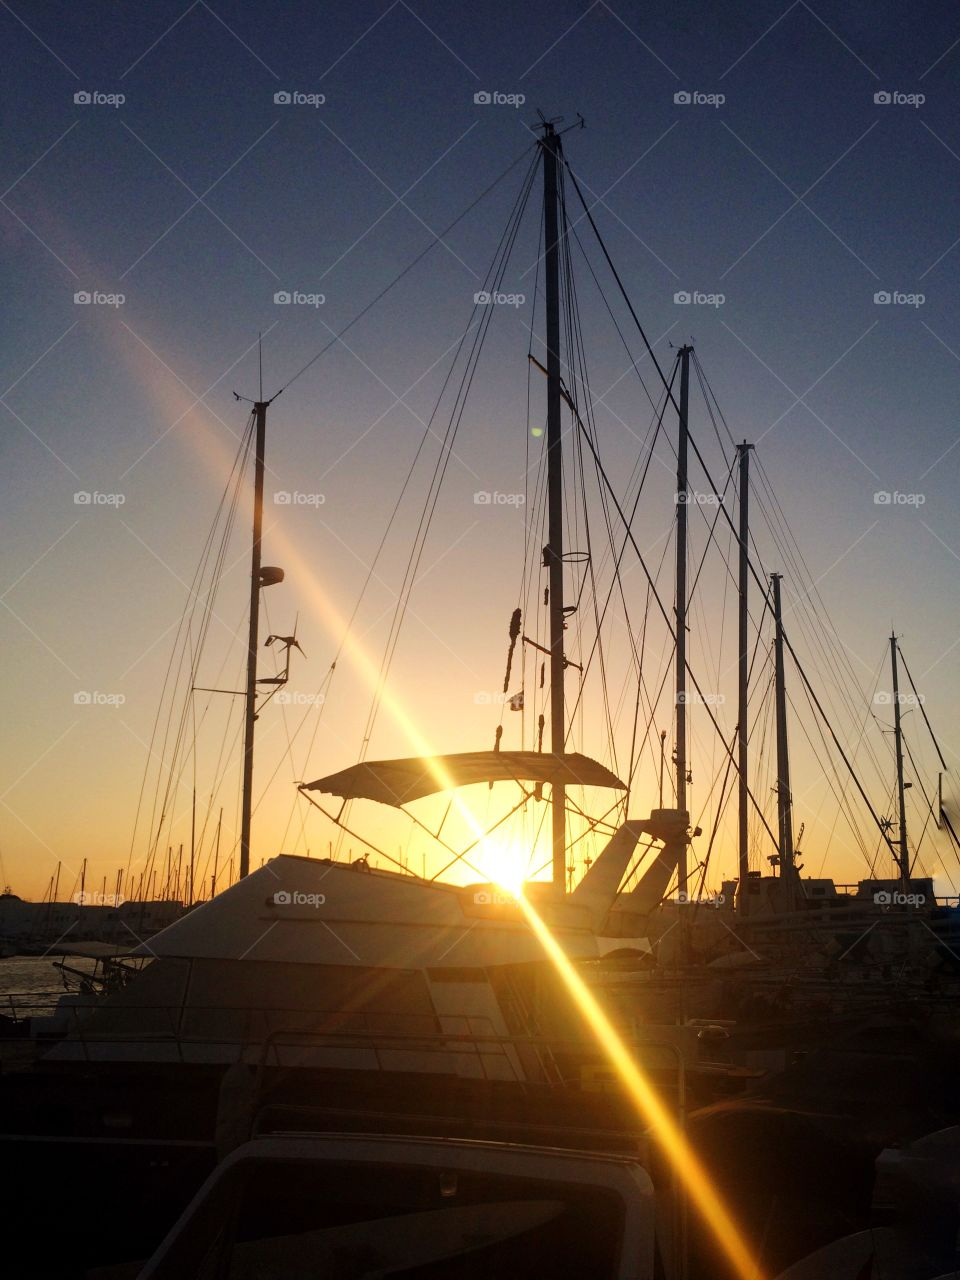 sun rays from behind the boats. boats at sunset with rays from behind the shadows